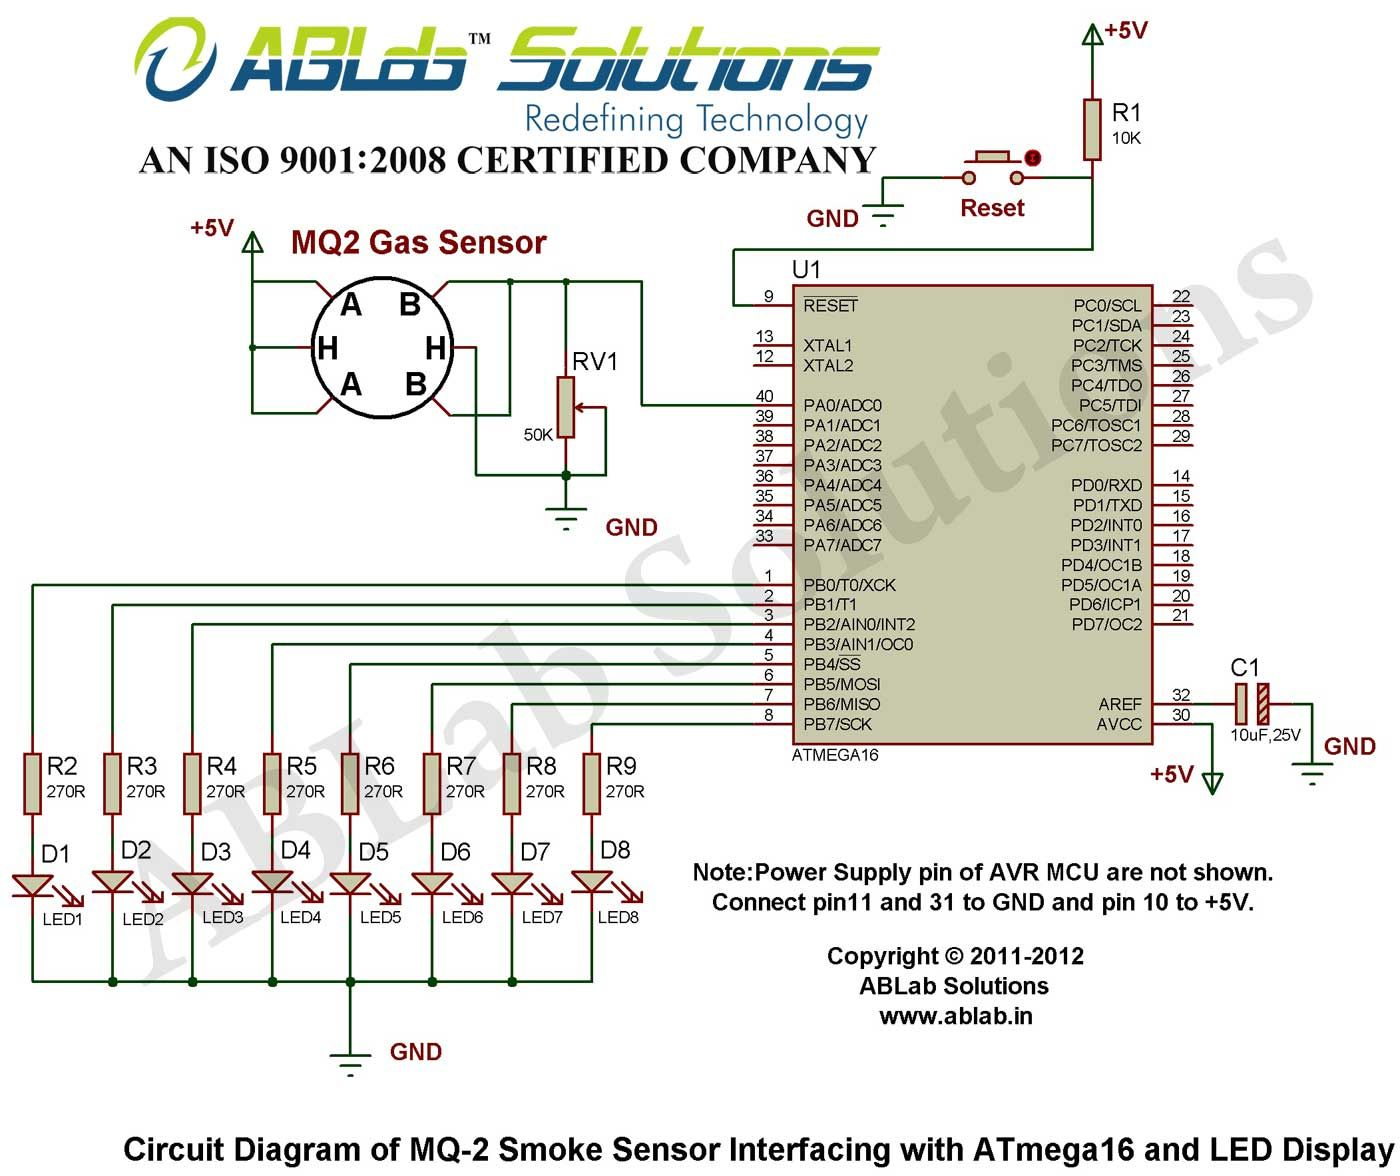 MQ-2-Smoke-Sensor-Interfacing-with-AVR ATmega16 Microcontroller-and-LED-Display  Circuit Diagram